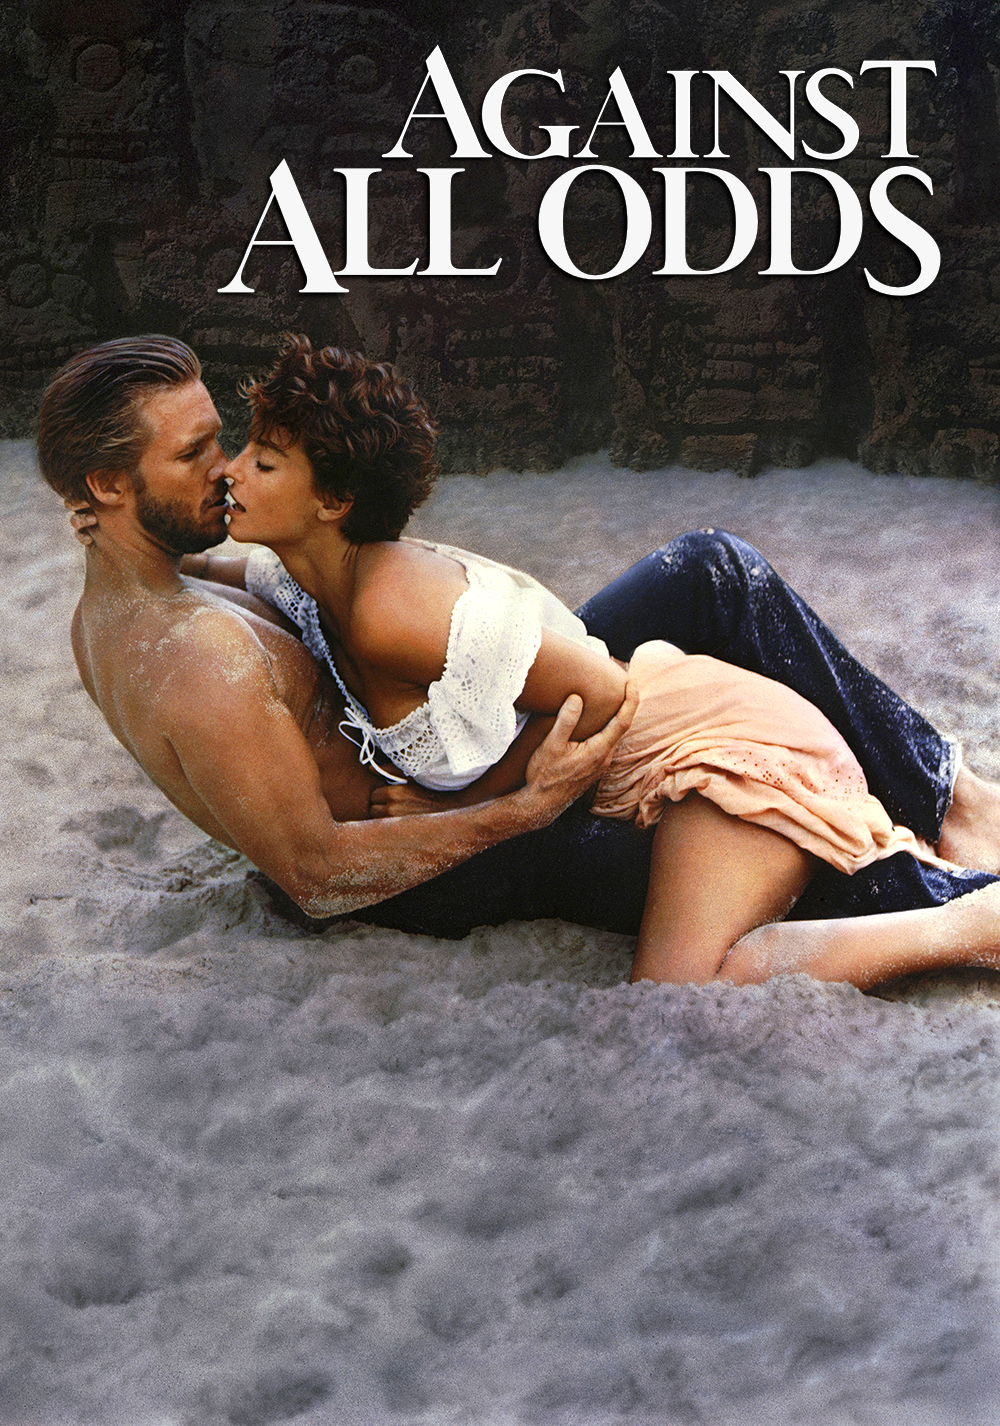 Image result for against all odds movie